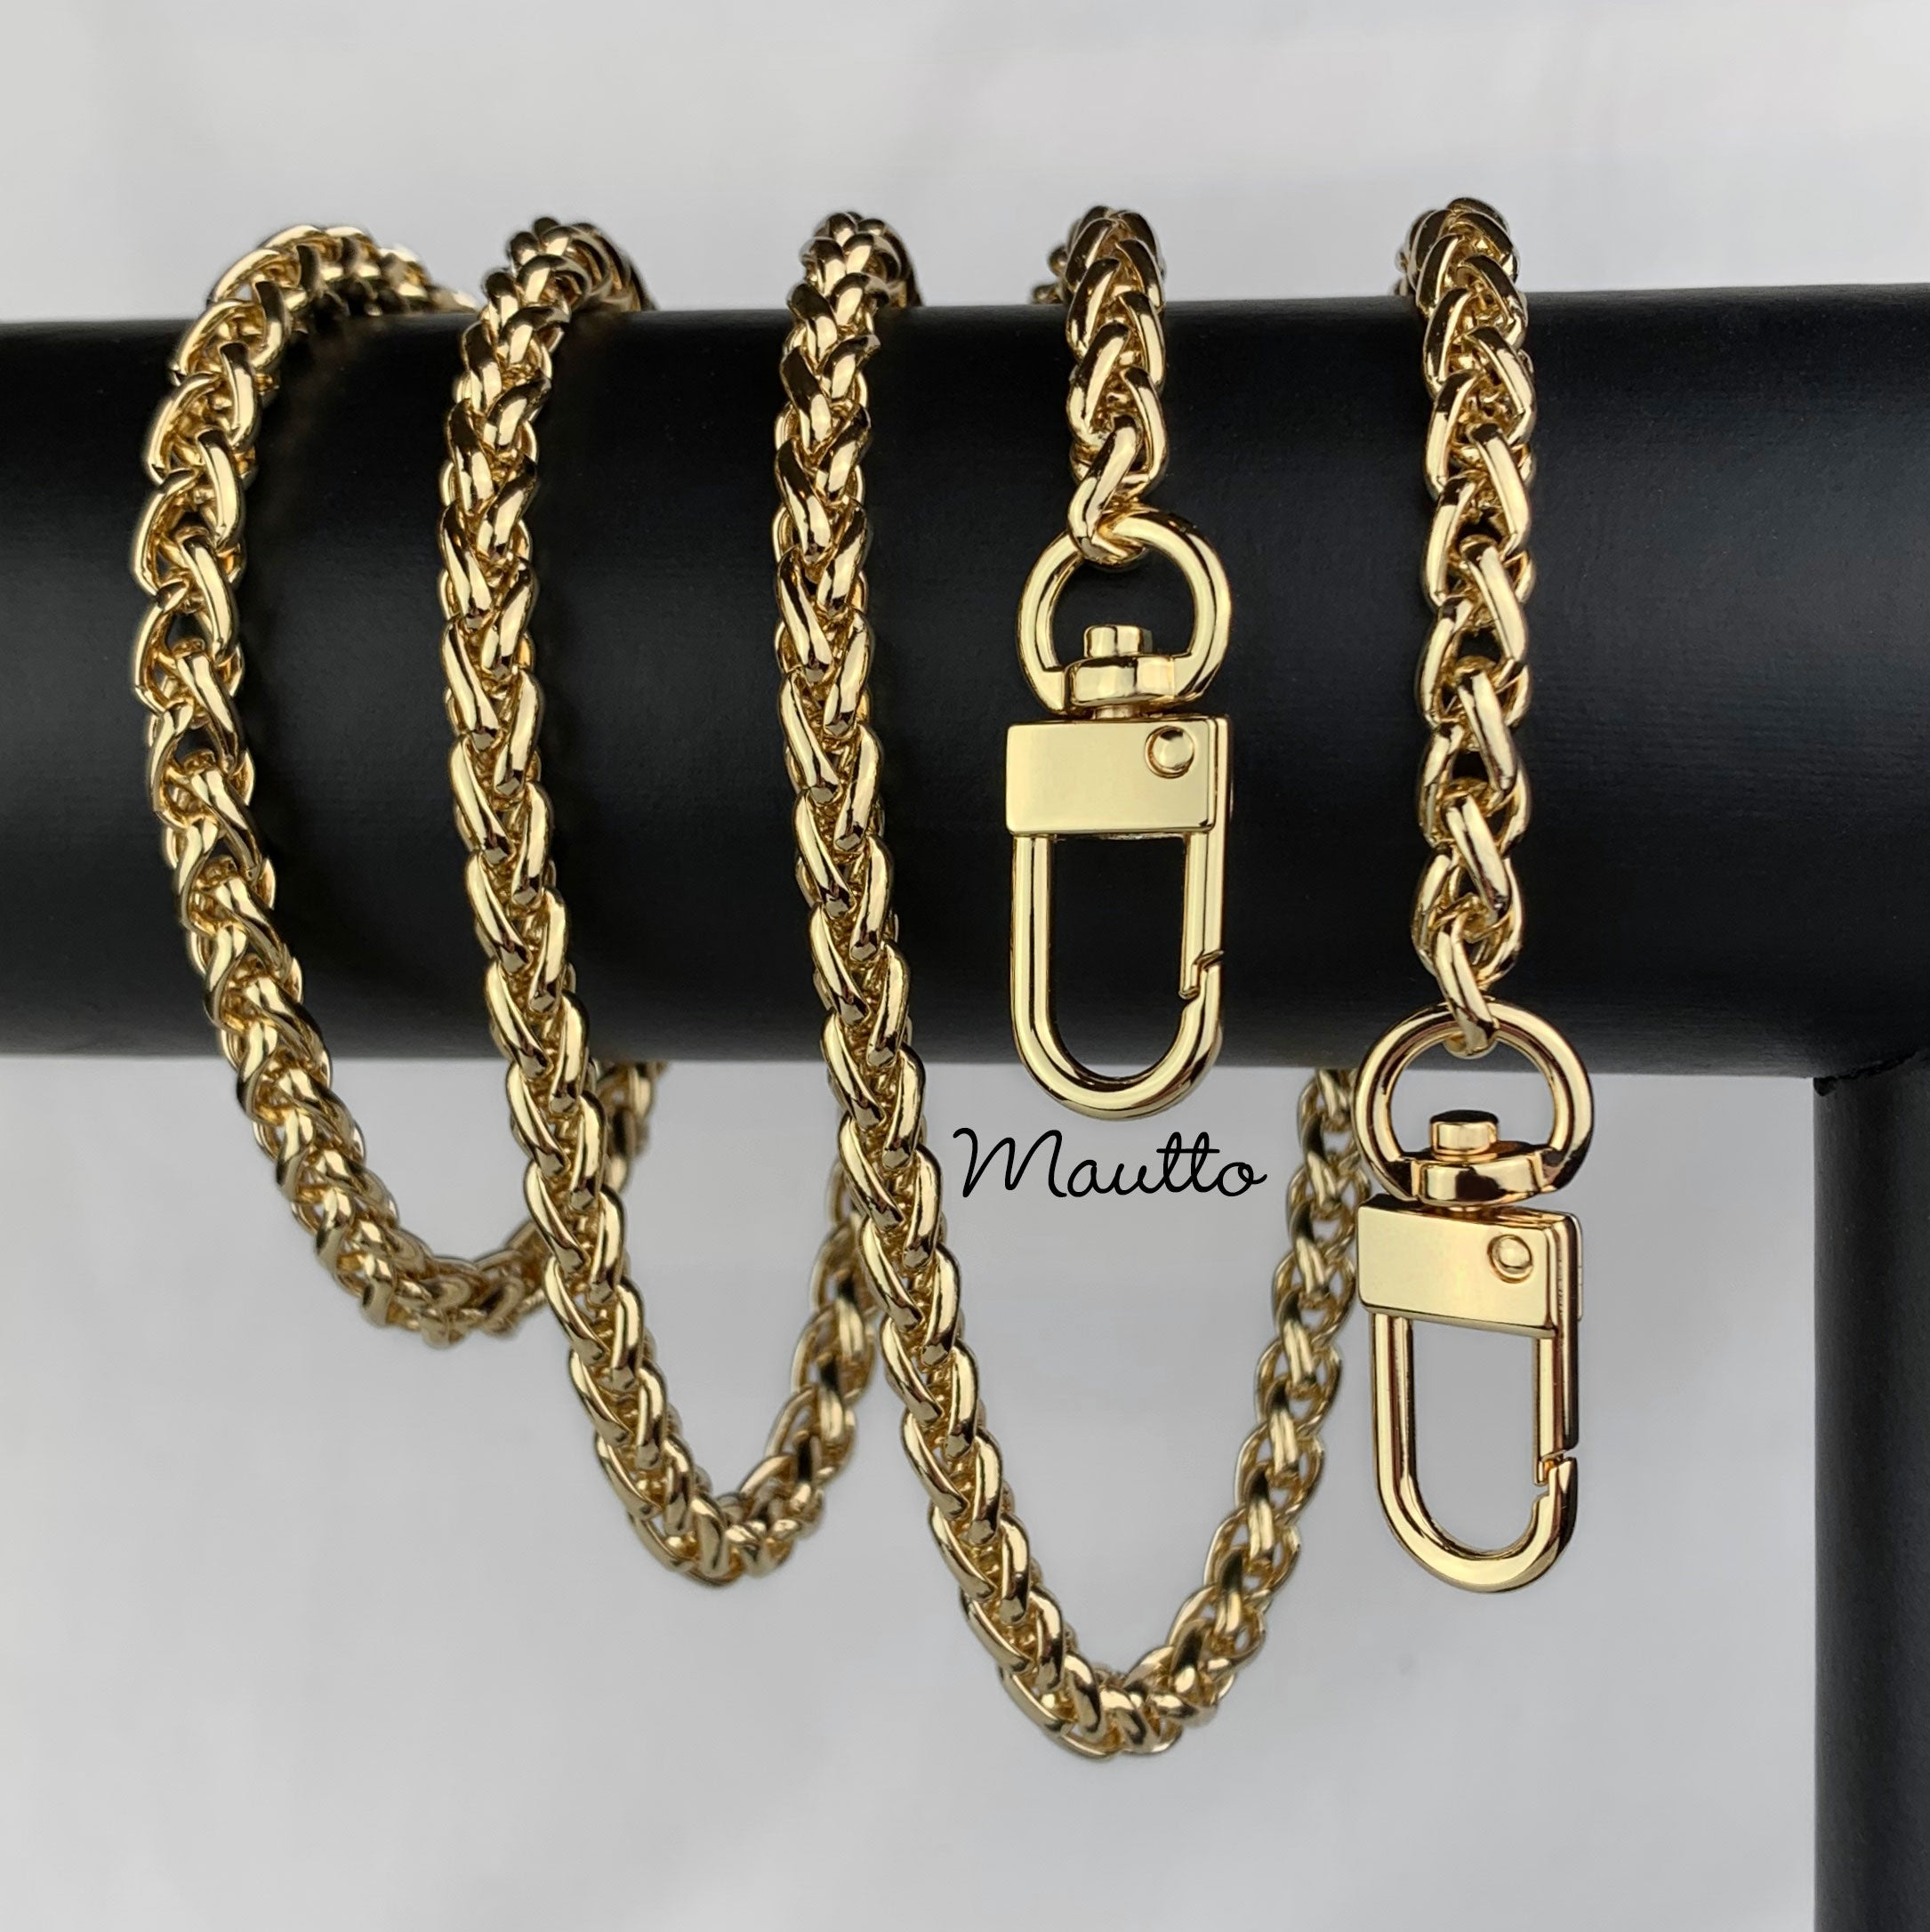 Golden Flat Chain Strap About 100cm Metal Handbag Sprocket Accessory Handle Replacement Chains